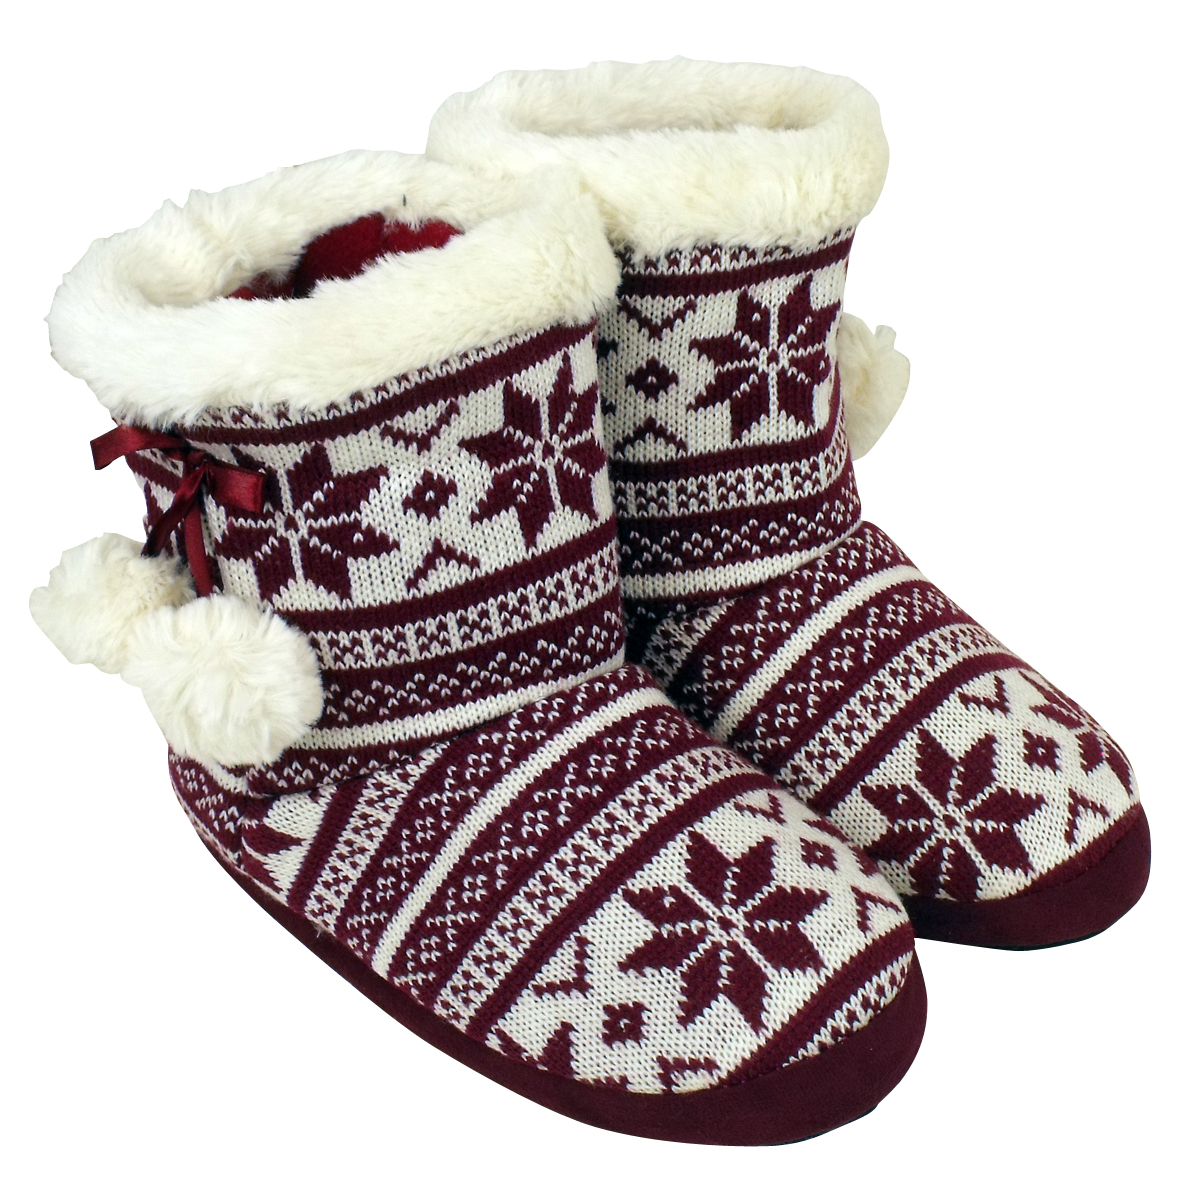 Quality Eskimo Bootee Ankle Boot Slippers Women Furry Warm ...